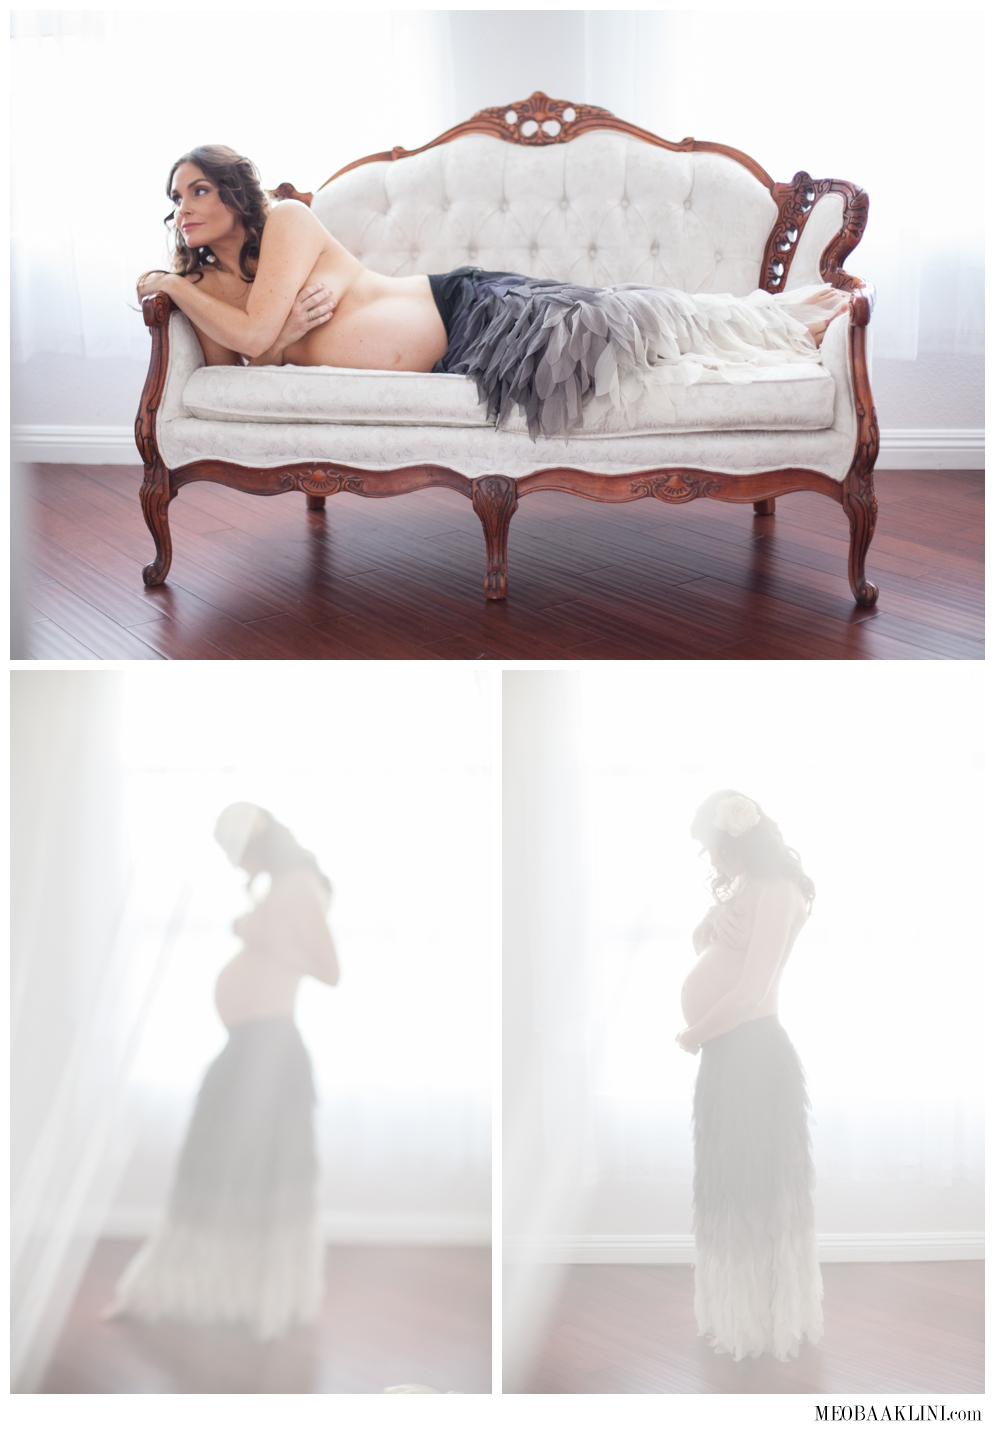 Napa-Valley-Maternity-Photographer-Melissa-Baaklini_0004